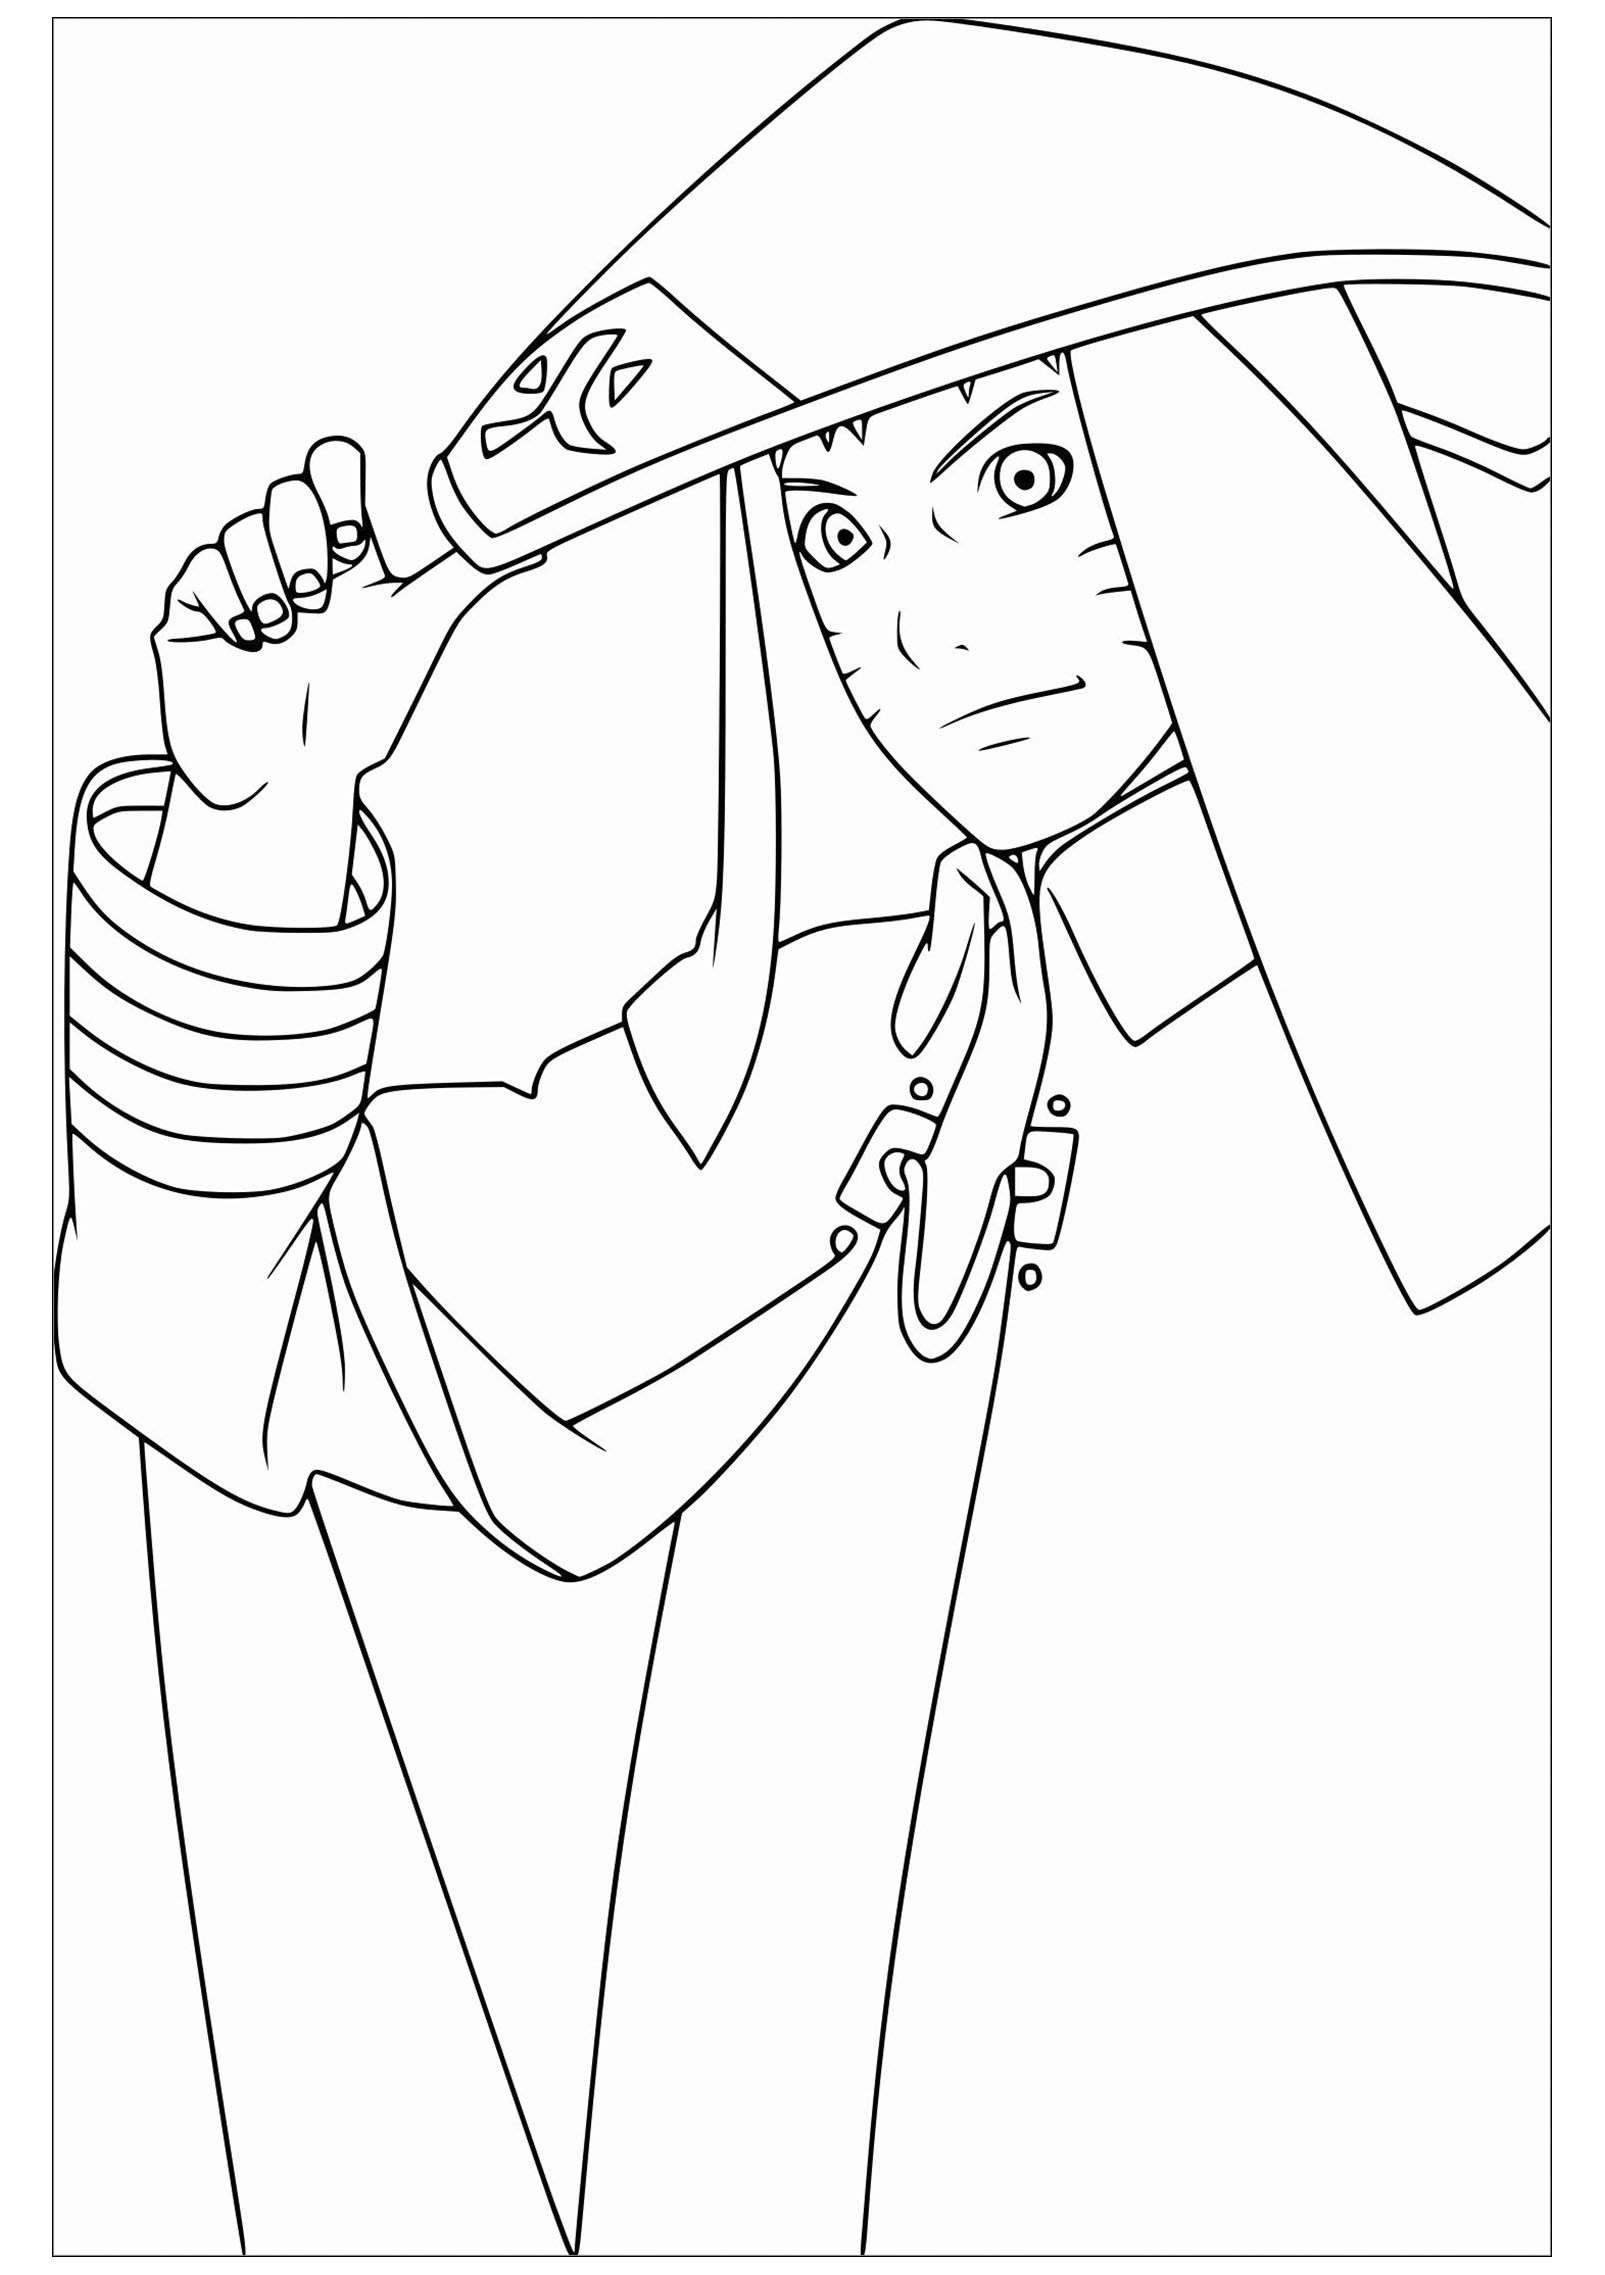 Free Naruto coloring page to download